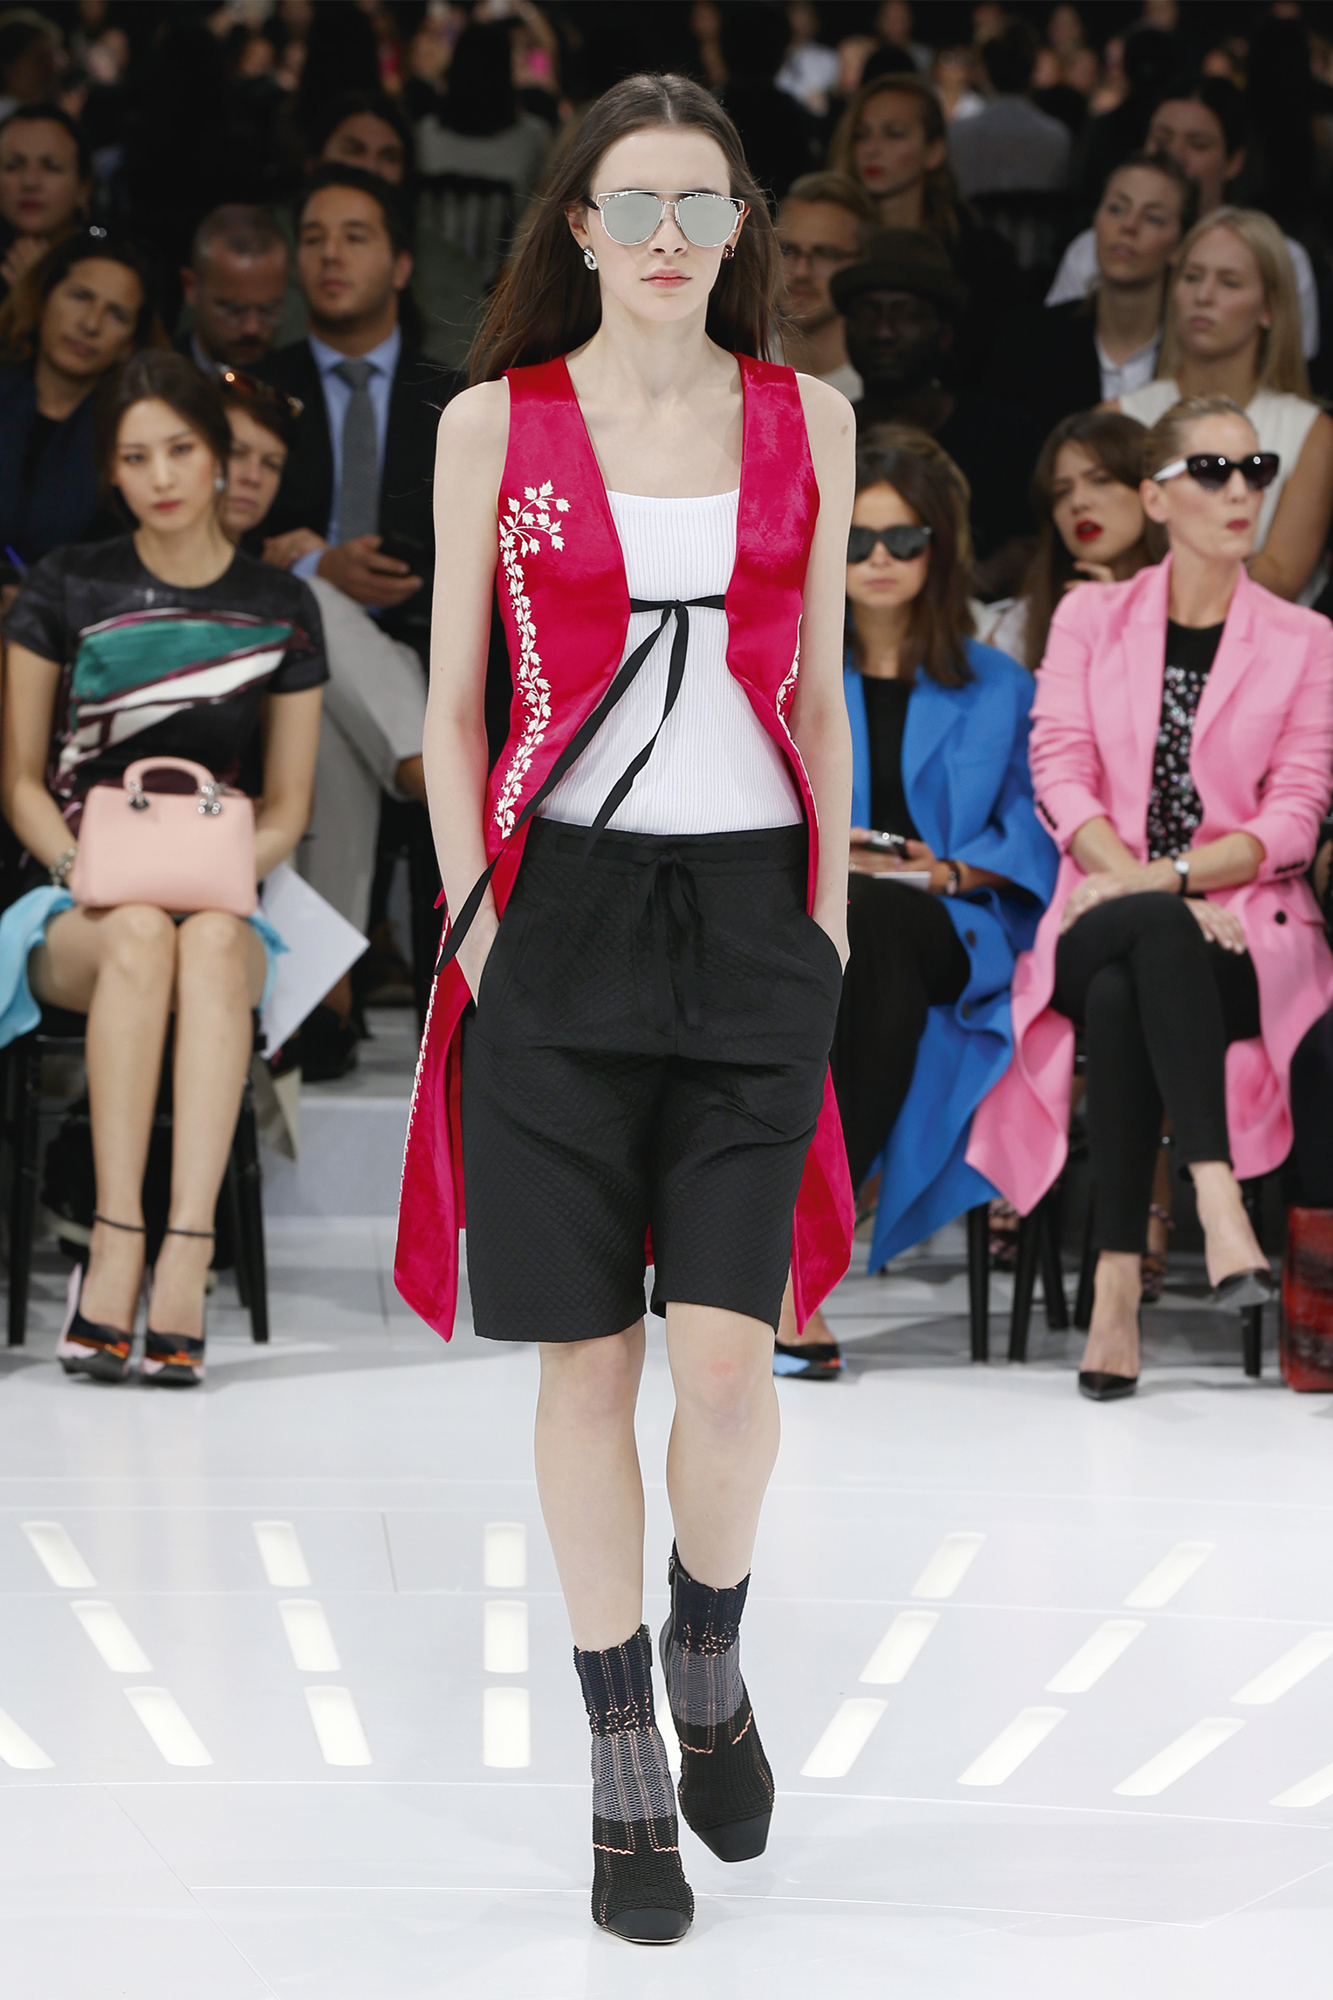 New Western Fashion Christian Dior Ready To Wear Dresses Spring Summer Collection 2015 (37)